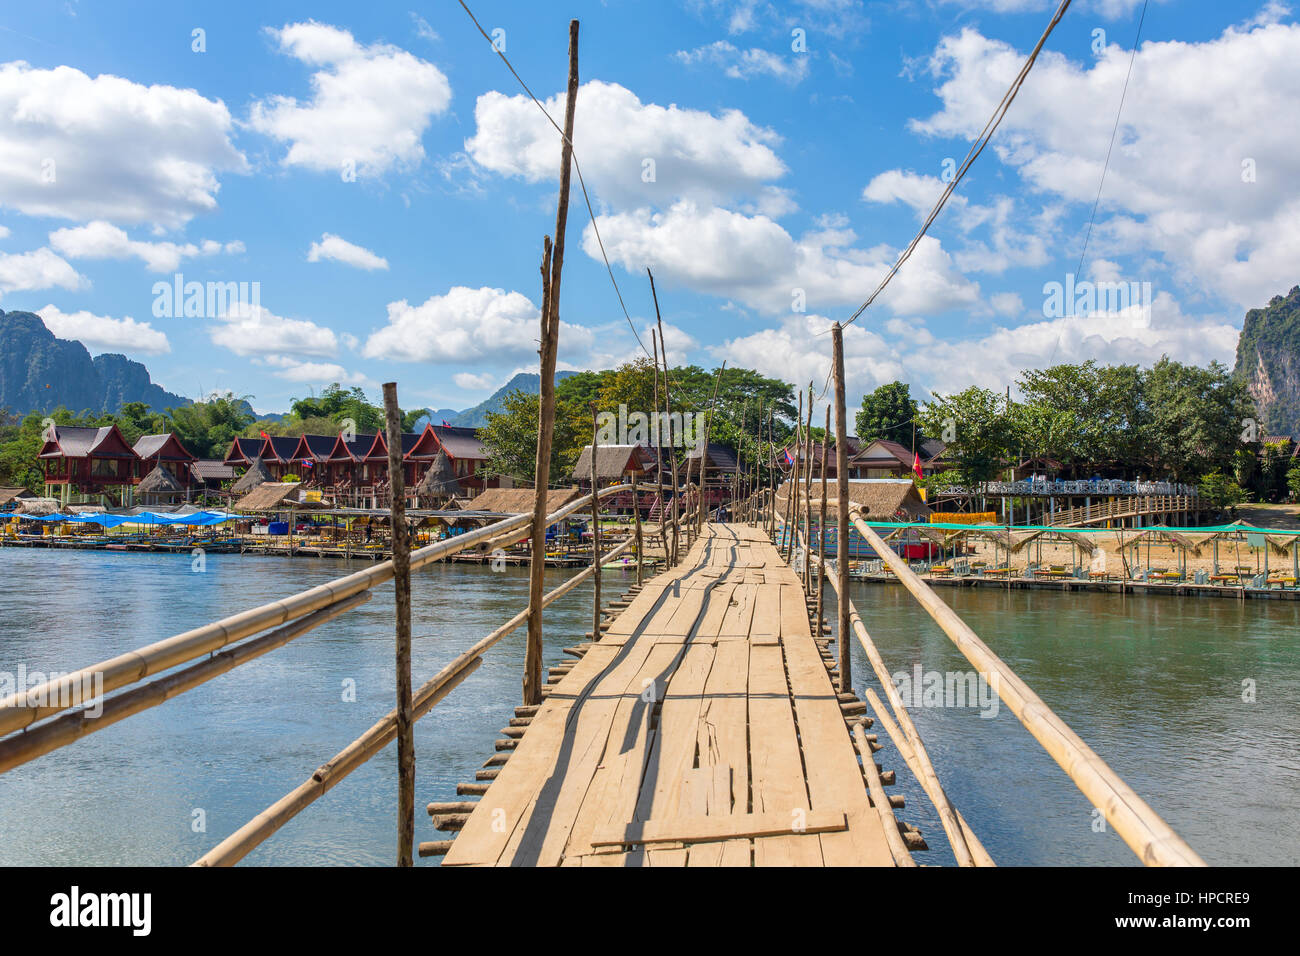 Wooden bridge across Nam Song river at Vang Vieng, Laos - Stock Image